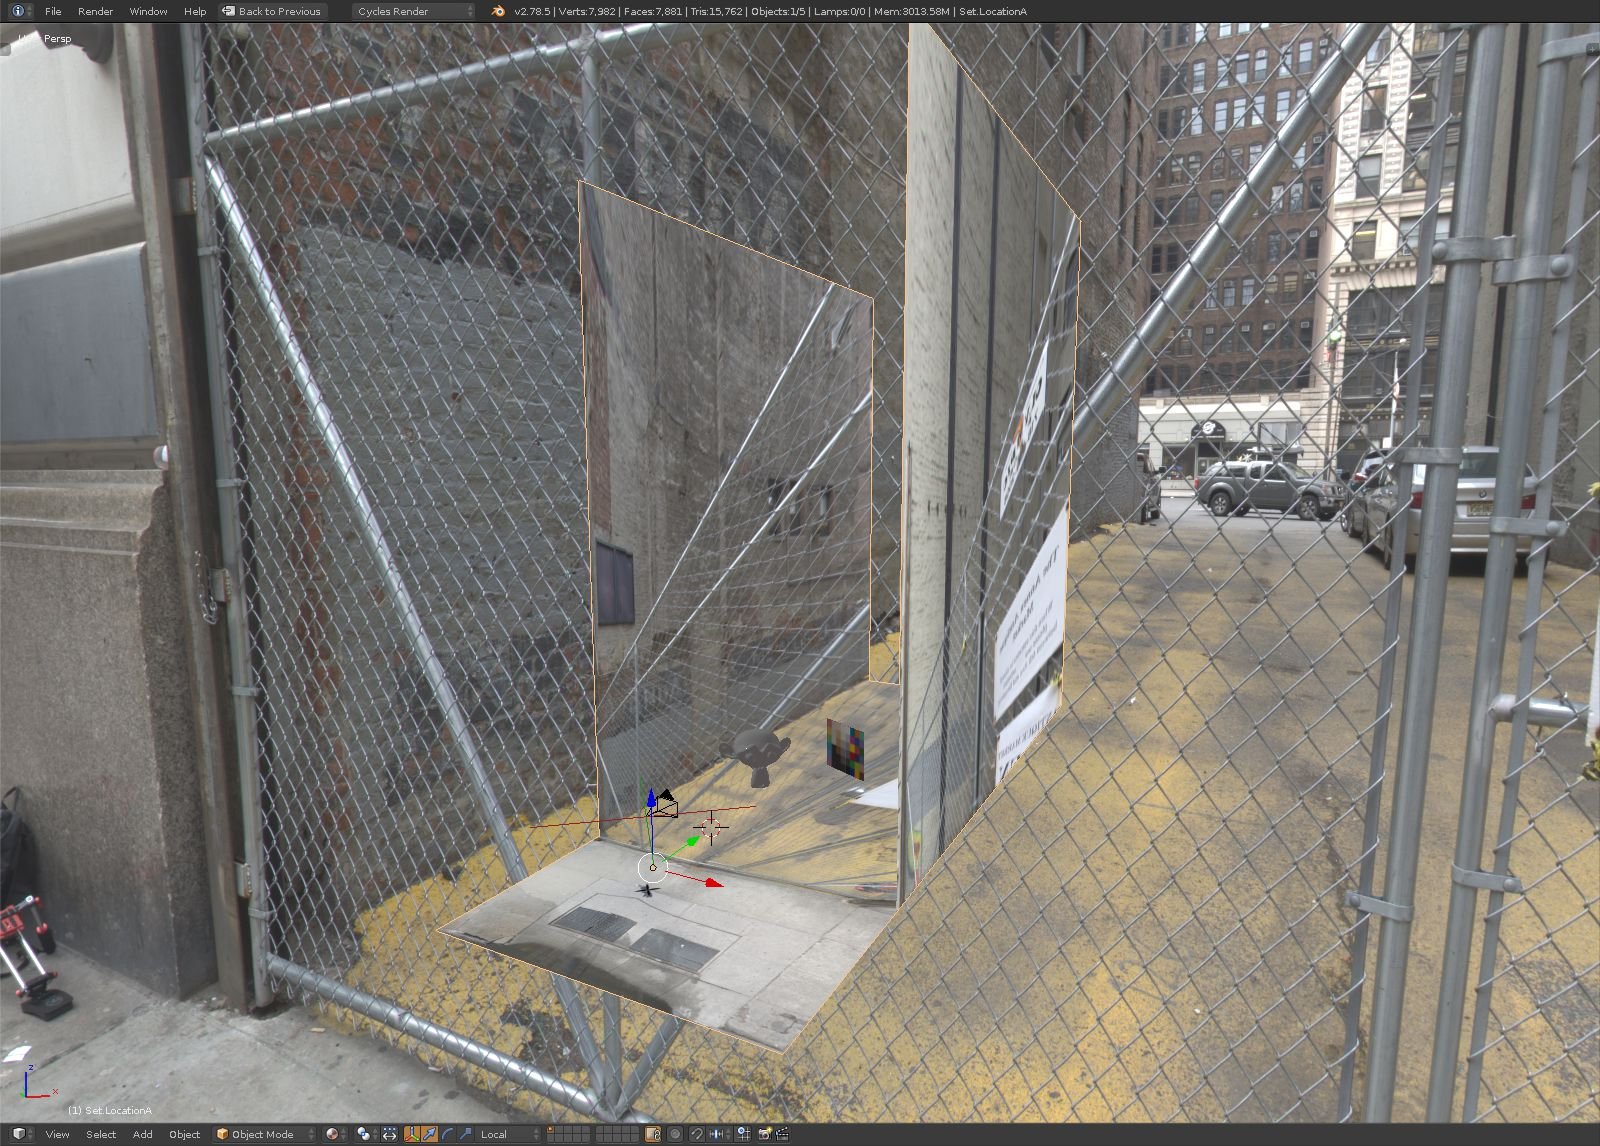 The baked set. Note how the wire fence  is cast on the walls and ground. Good enough for the lighting data we need. The key captures are the yellow ground and brick walls.